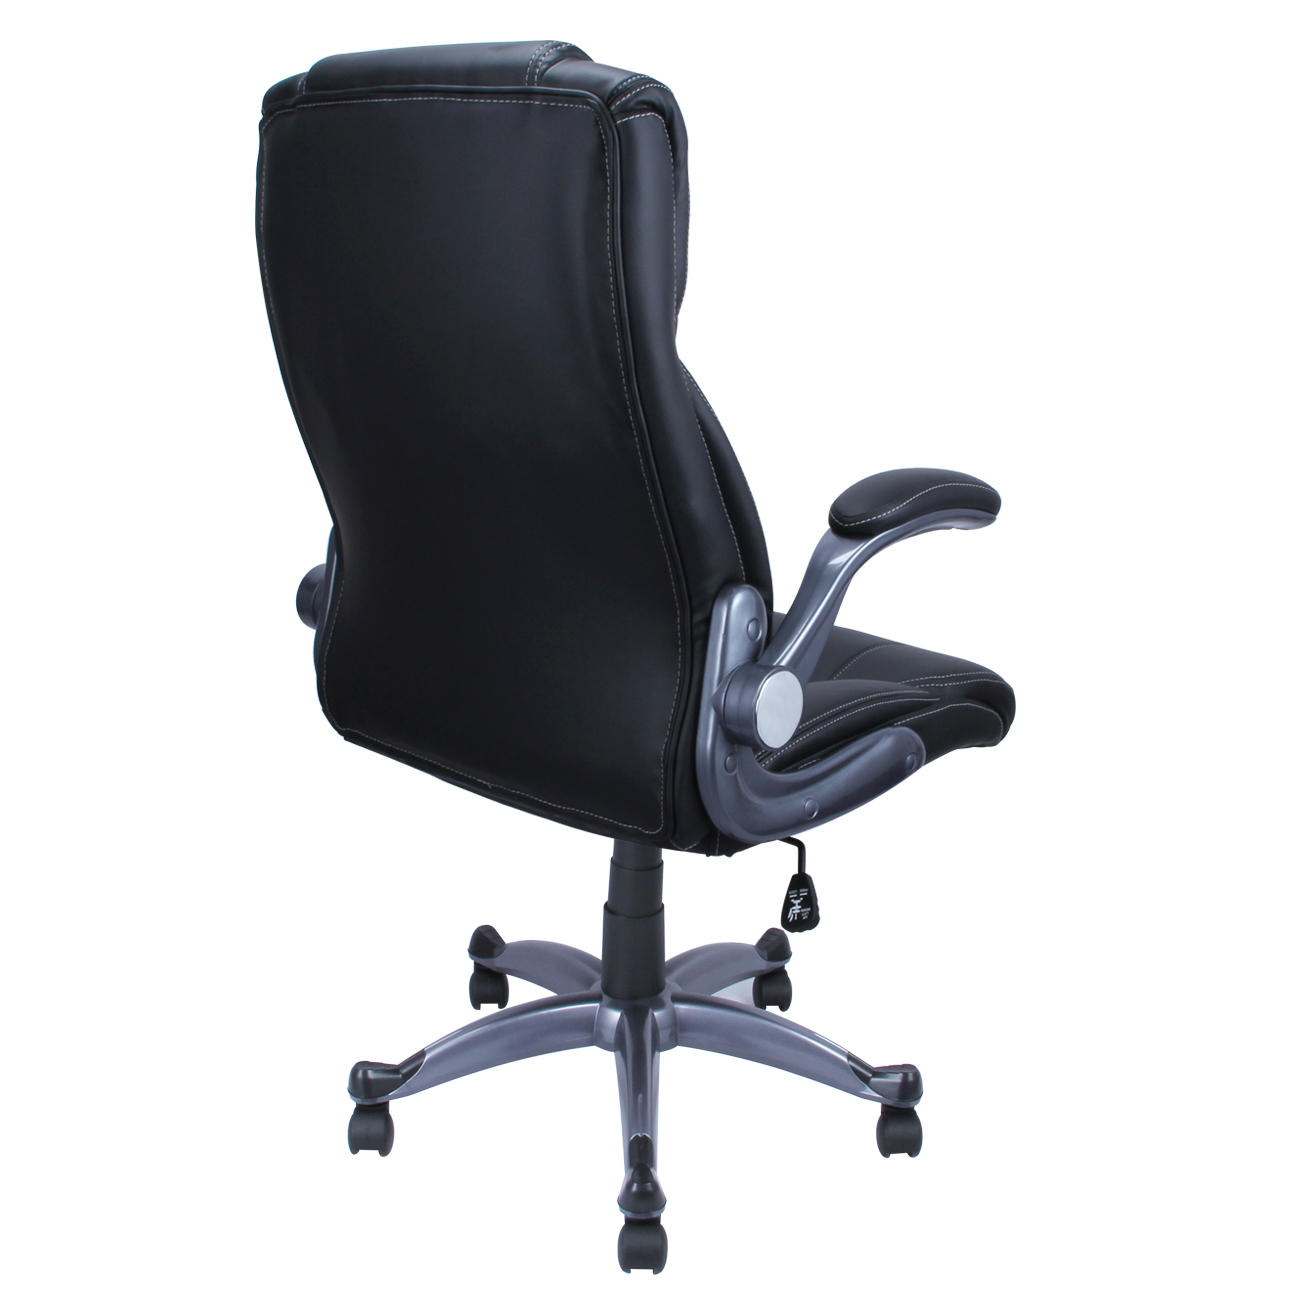 modern black leather desk chair outdoor fishing pu ergonomic executive computer